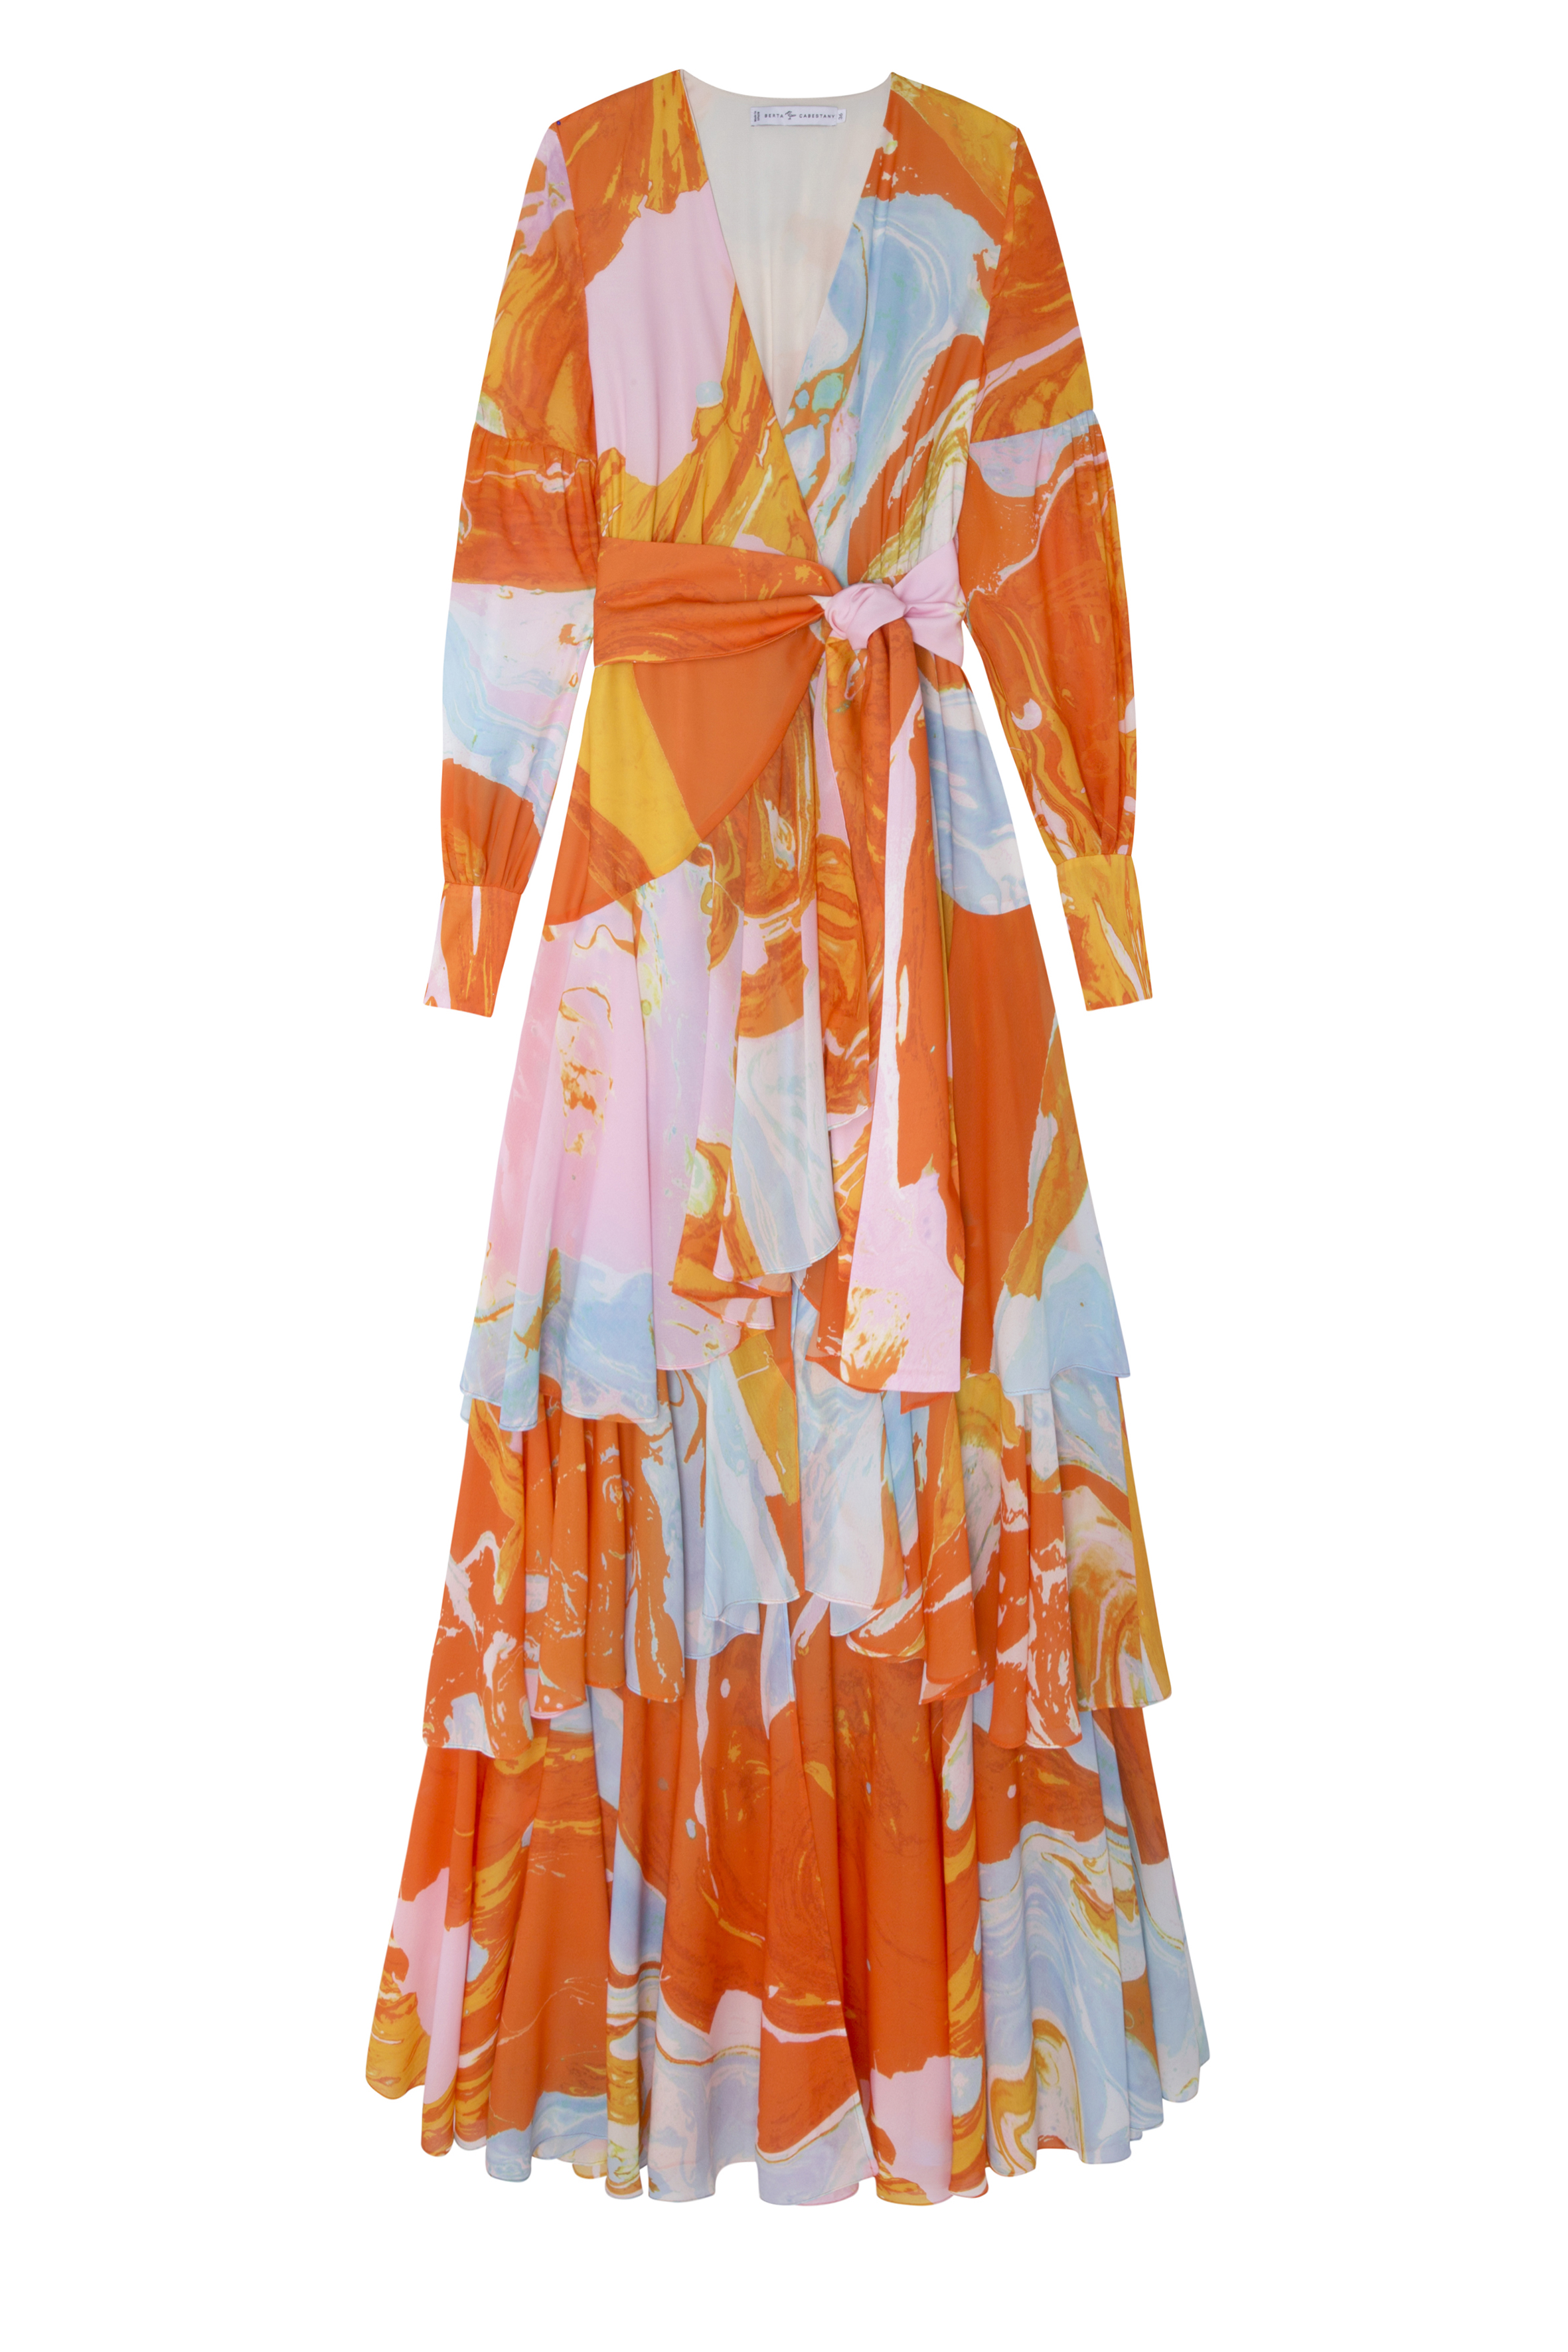 Sorolla Dress by Berta Cabestany on curated-crowd.com